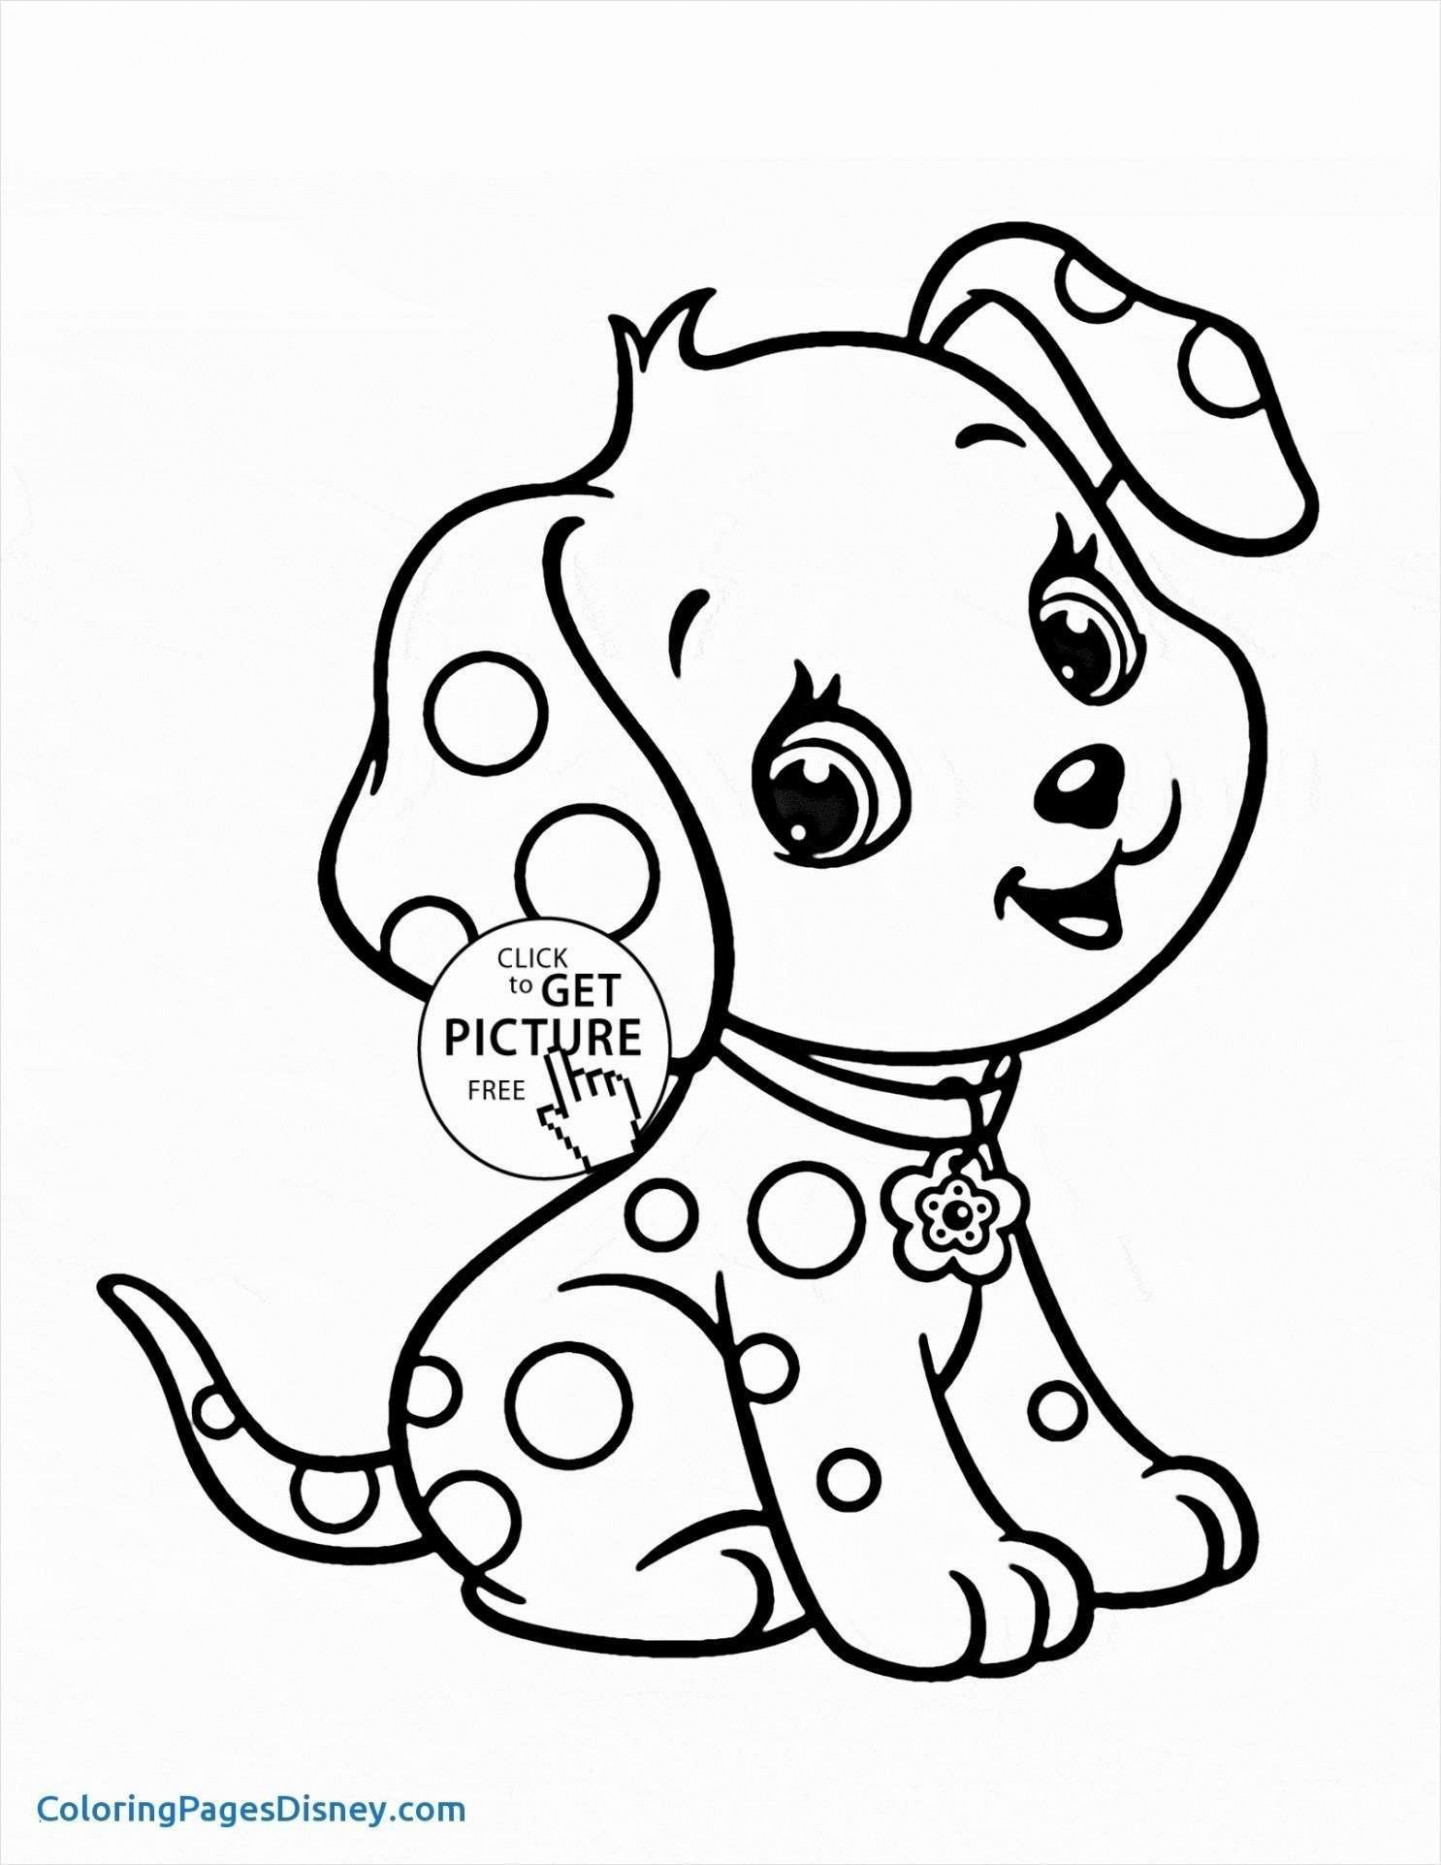 Coloring Book World: Fantastic Christmas Wreath Coloring Pages. Free ..